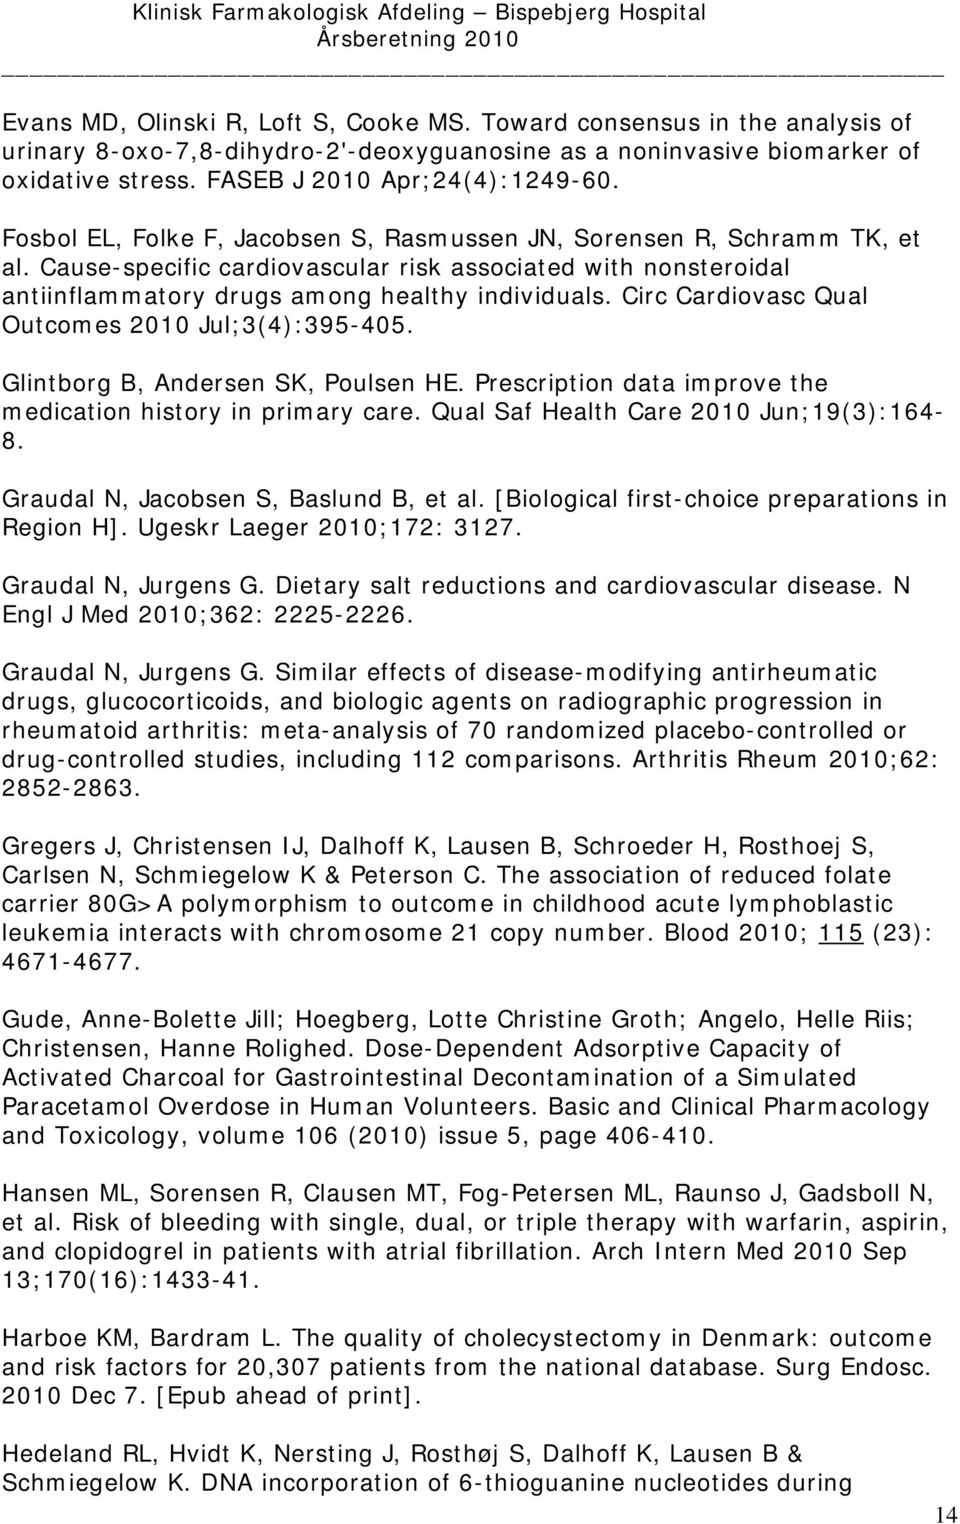 Circ Cardiovasc Qual Outcomes 2010 Jul;3(4):395-405. Glintborg B, Andersen SK, Poulsen HE. Prescription data improve the medication history in primary care. Qual Saf Health Care 2010 Jun;19(3):164-8.